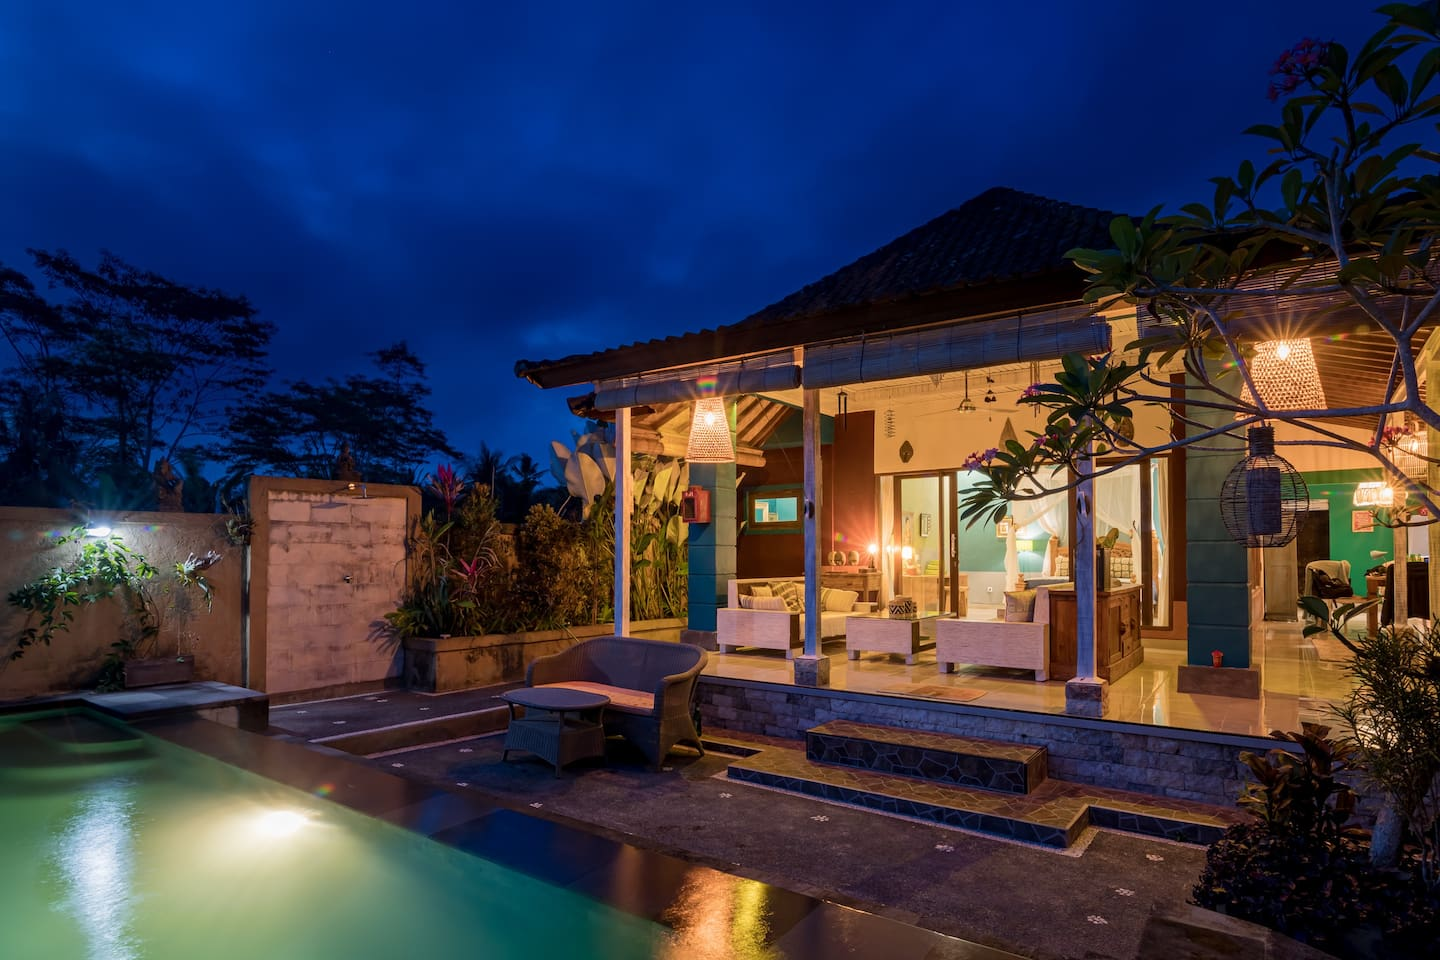 The house have a very nice vibe in the evening